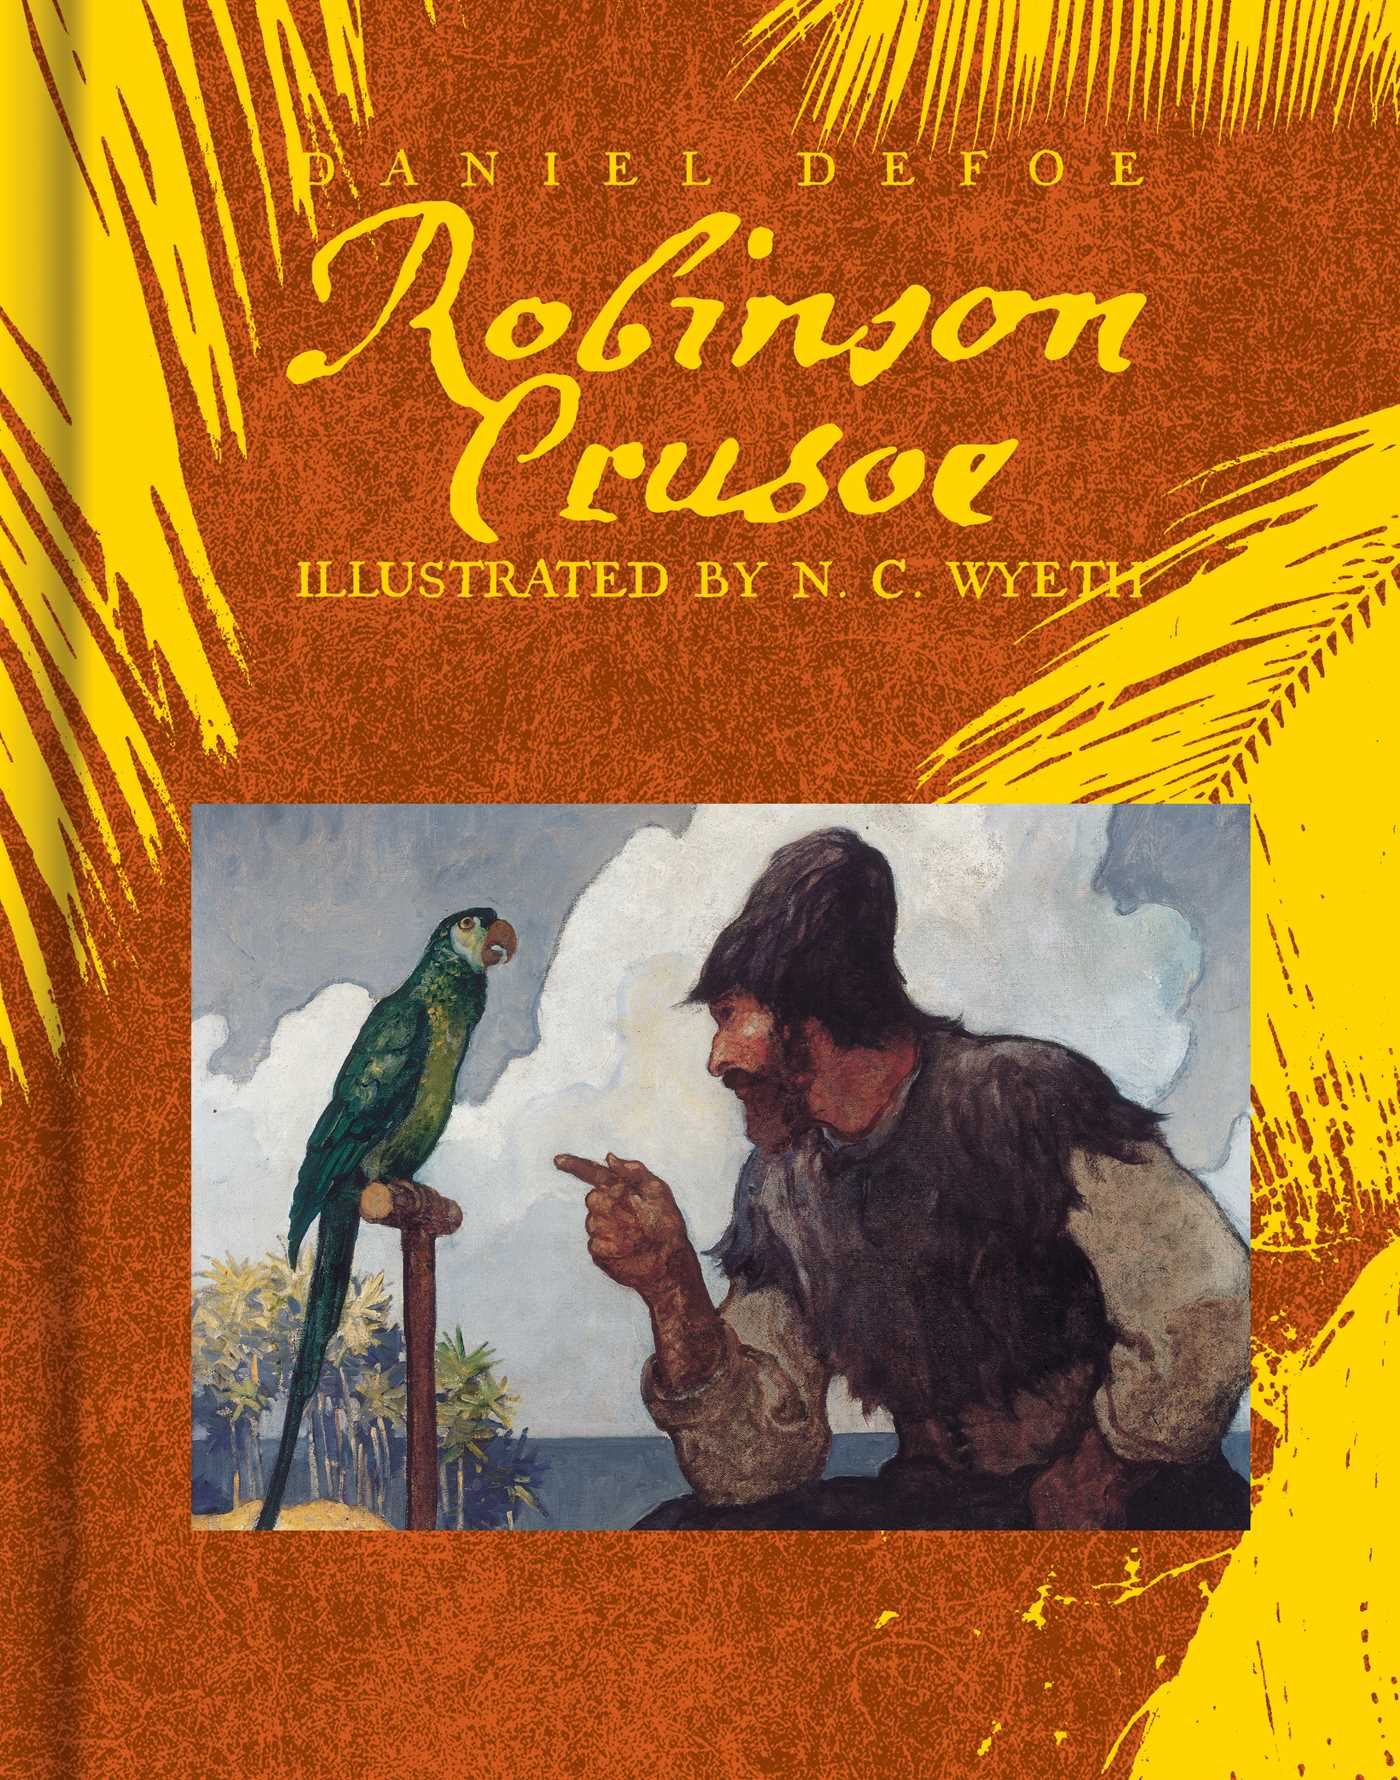 robinson crusoe essays daniel defoe robinson crusoe essay  robinson crusoe analysis robinson crusoe book by daniel defoe official publisher page robinson crusoe